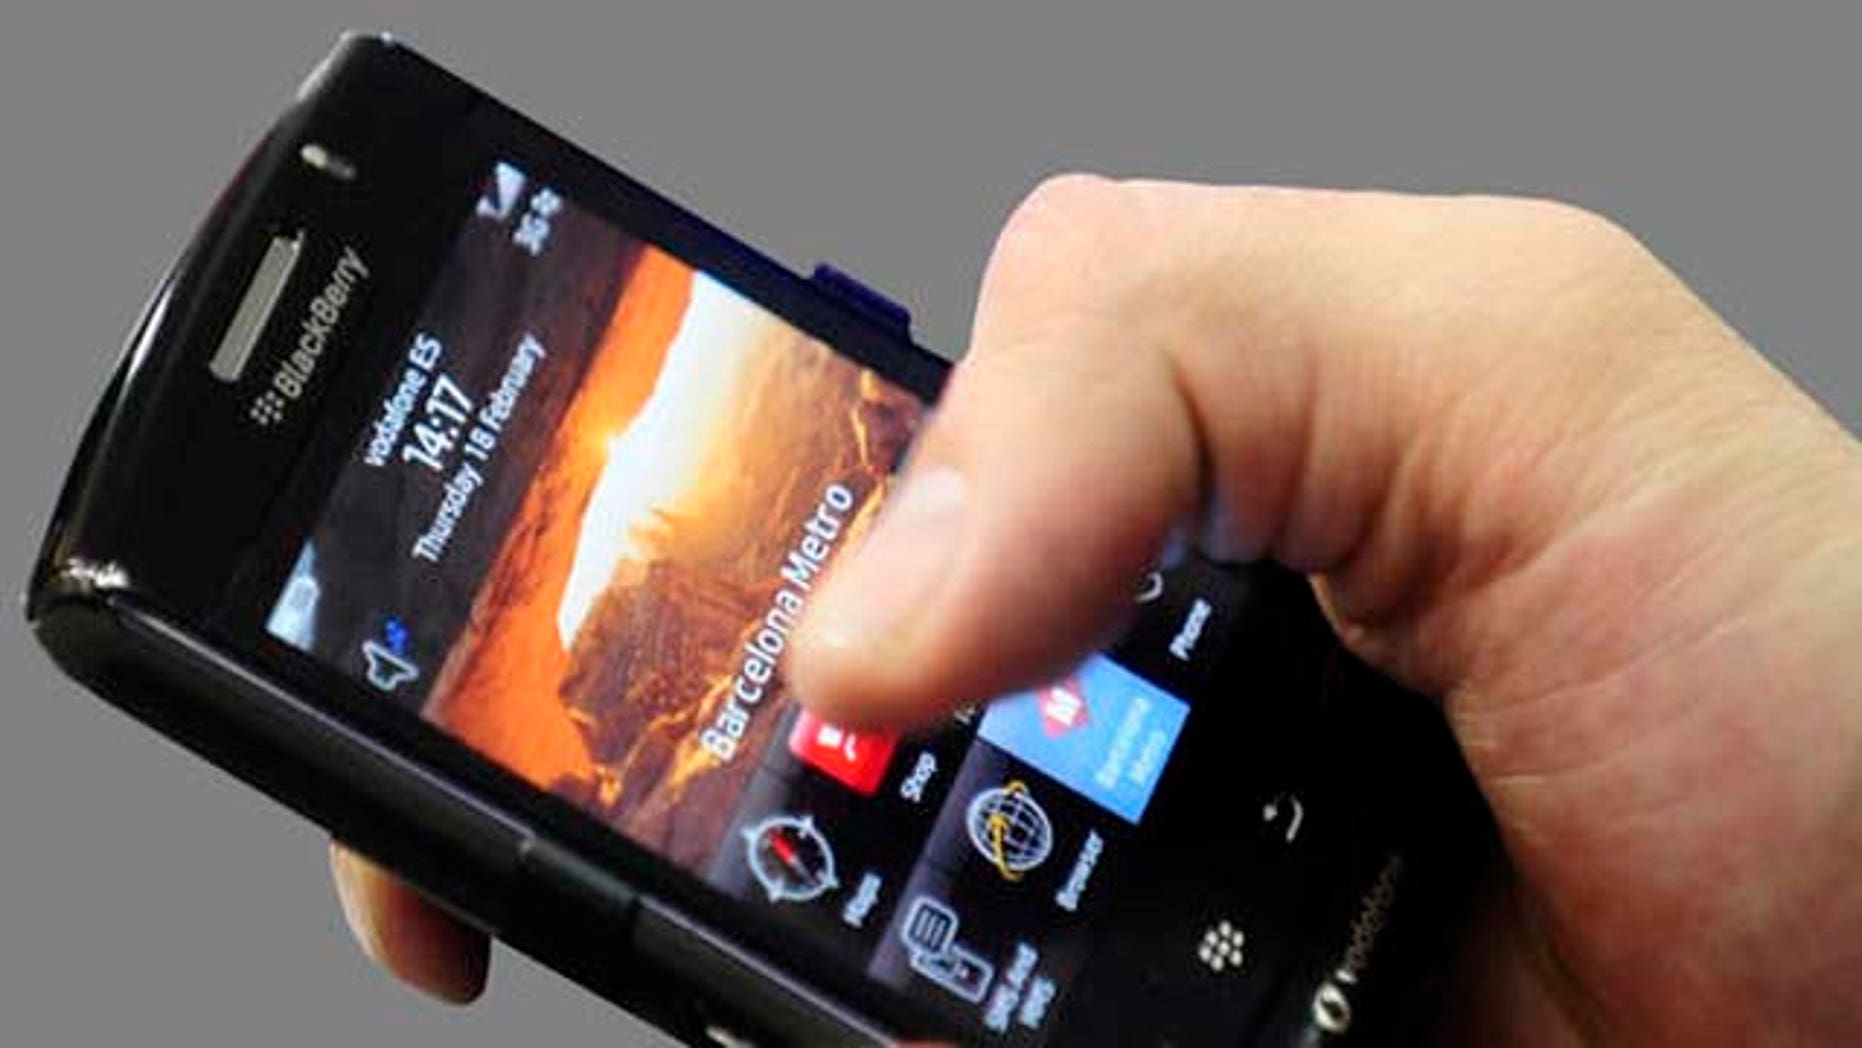 In this Feb. 18, 2010 photo, a BlackBerry Storm2 smartphone is displayed at the Mobile World congress in Barcelona, Spain. BlackBerry maker Research In Motion reports quarterly financial results Wednesday, March 31, 2010. (AP Photo/Manu Fernandez)